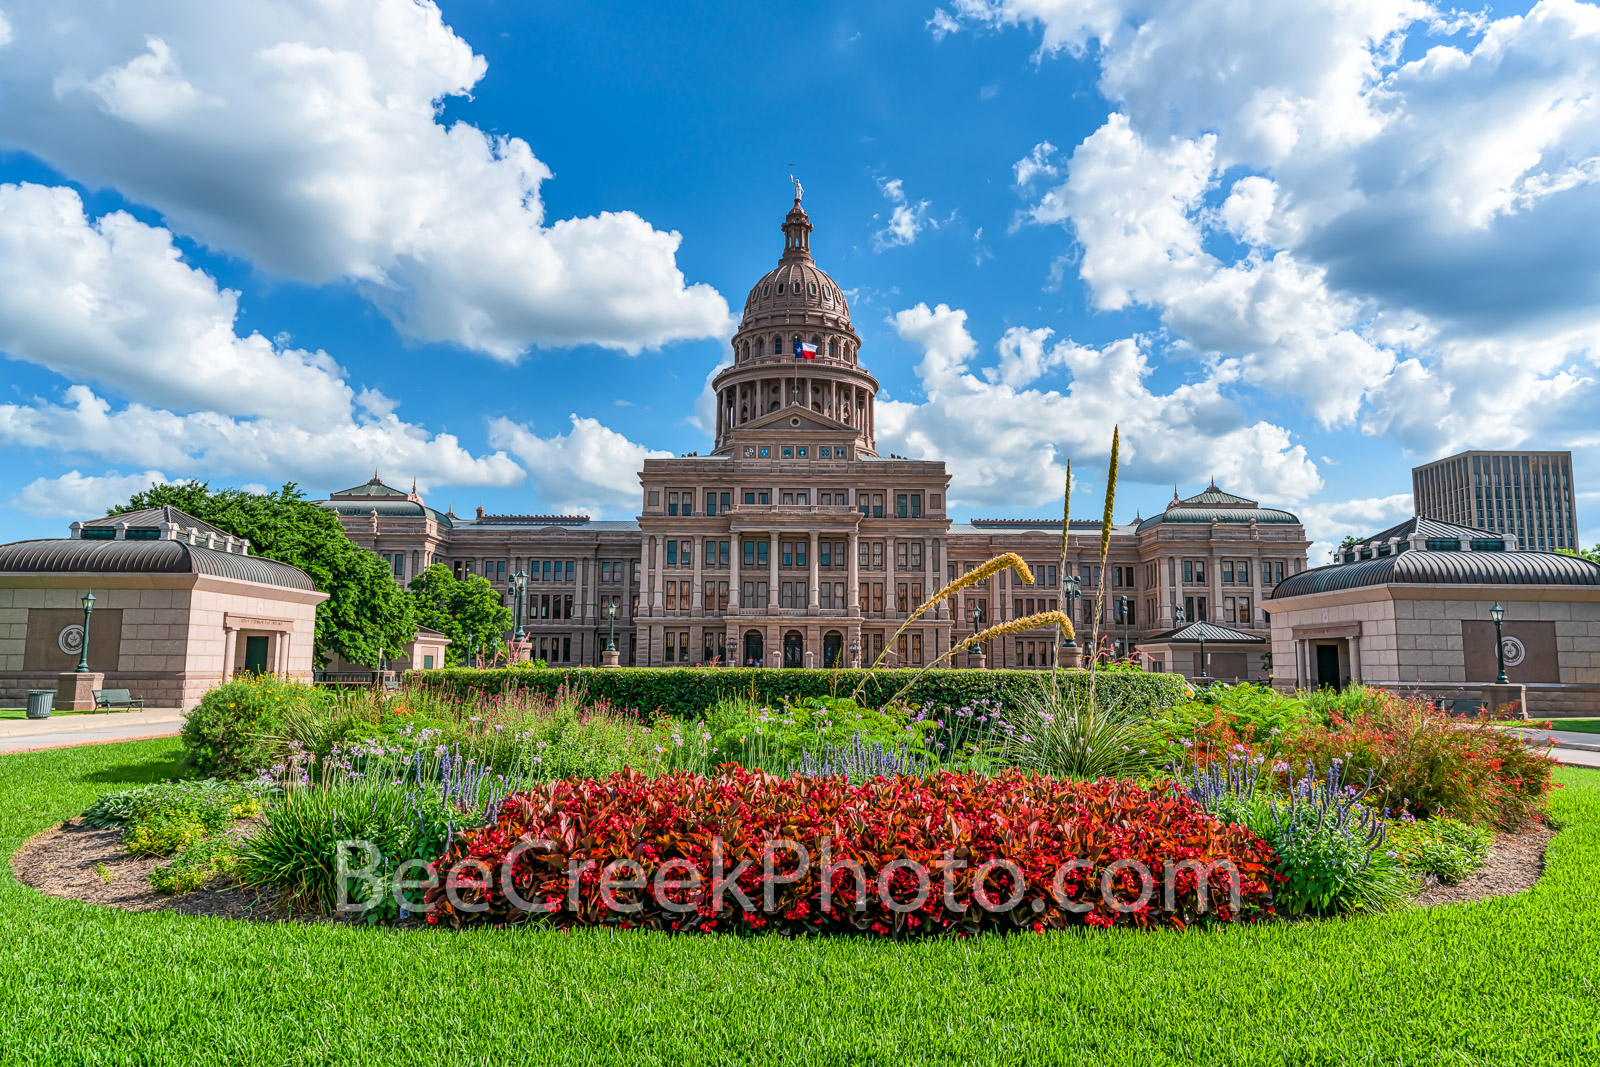 Keywords:Capitol of Texas, texas state capitol, austin, photos,images, austin texas, images of Austin, Texas Capitol images, images of texas, images of texas capitol, photos of texas, photos of austin, photo